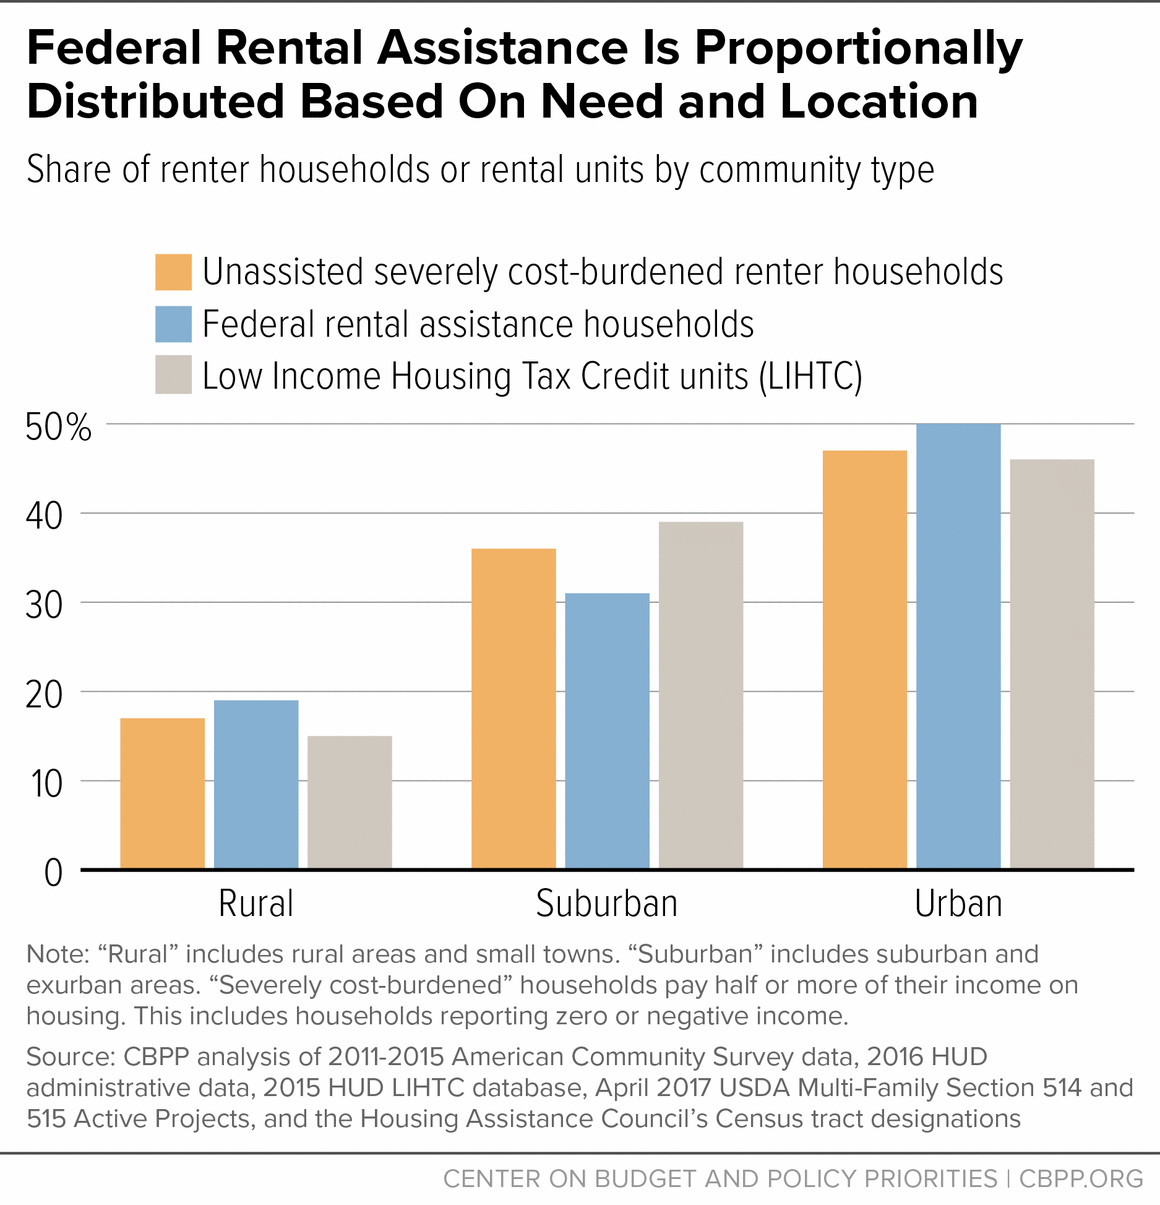 Federal Rental Assistance Is Proportionally Distributed Based on Need and Location